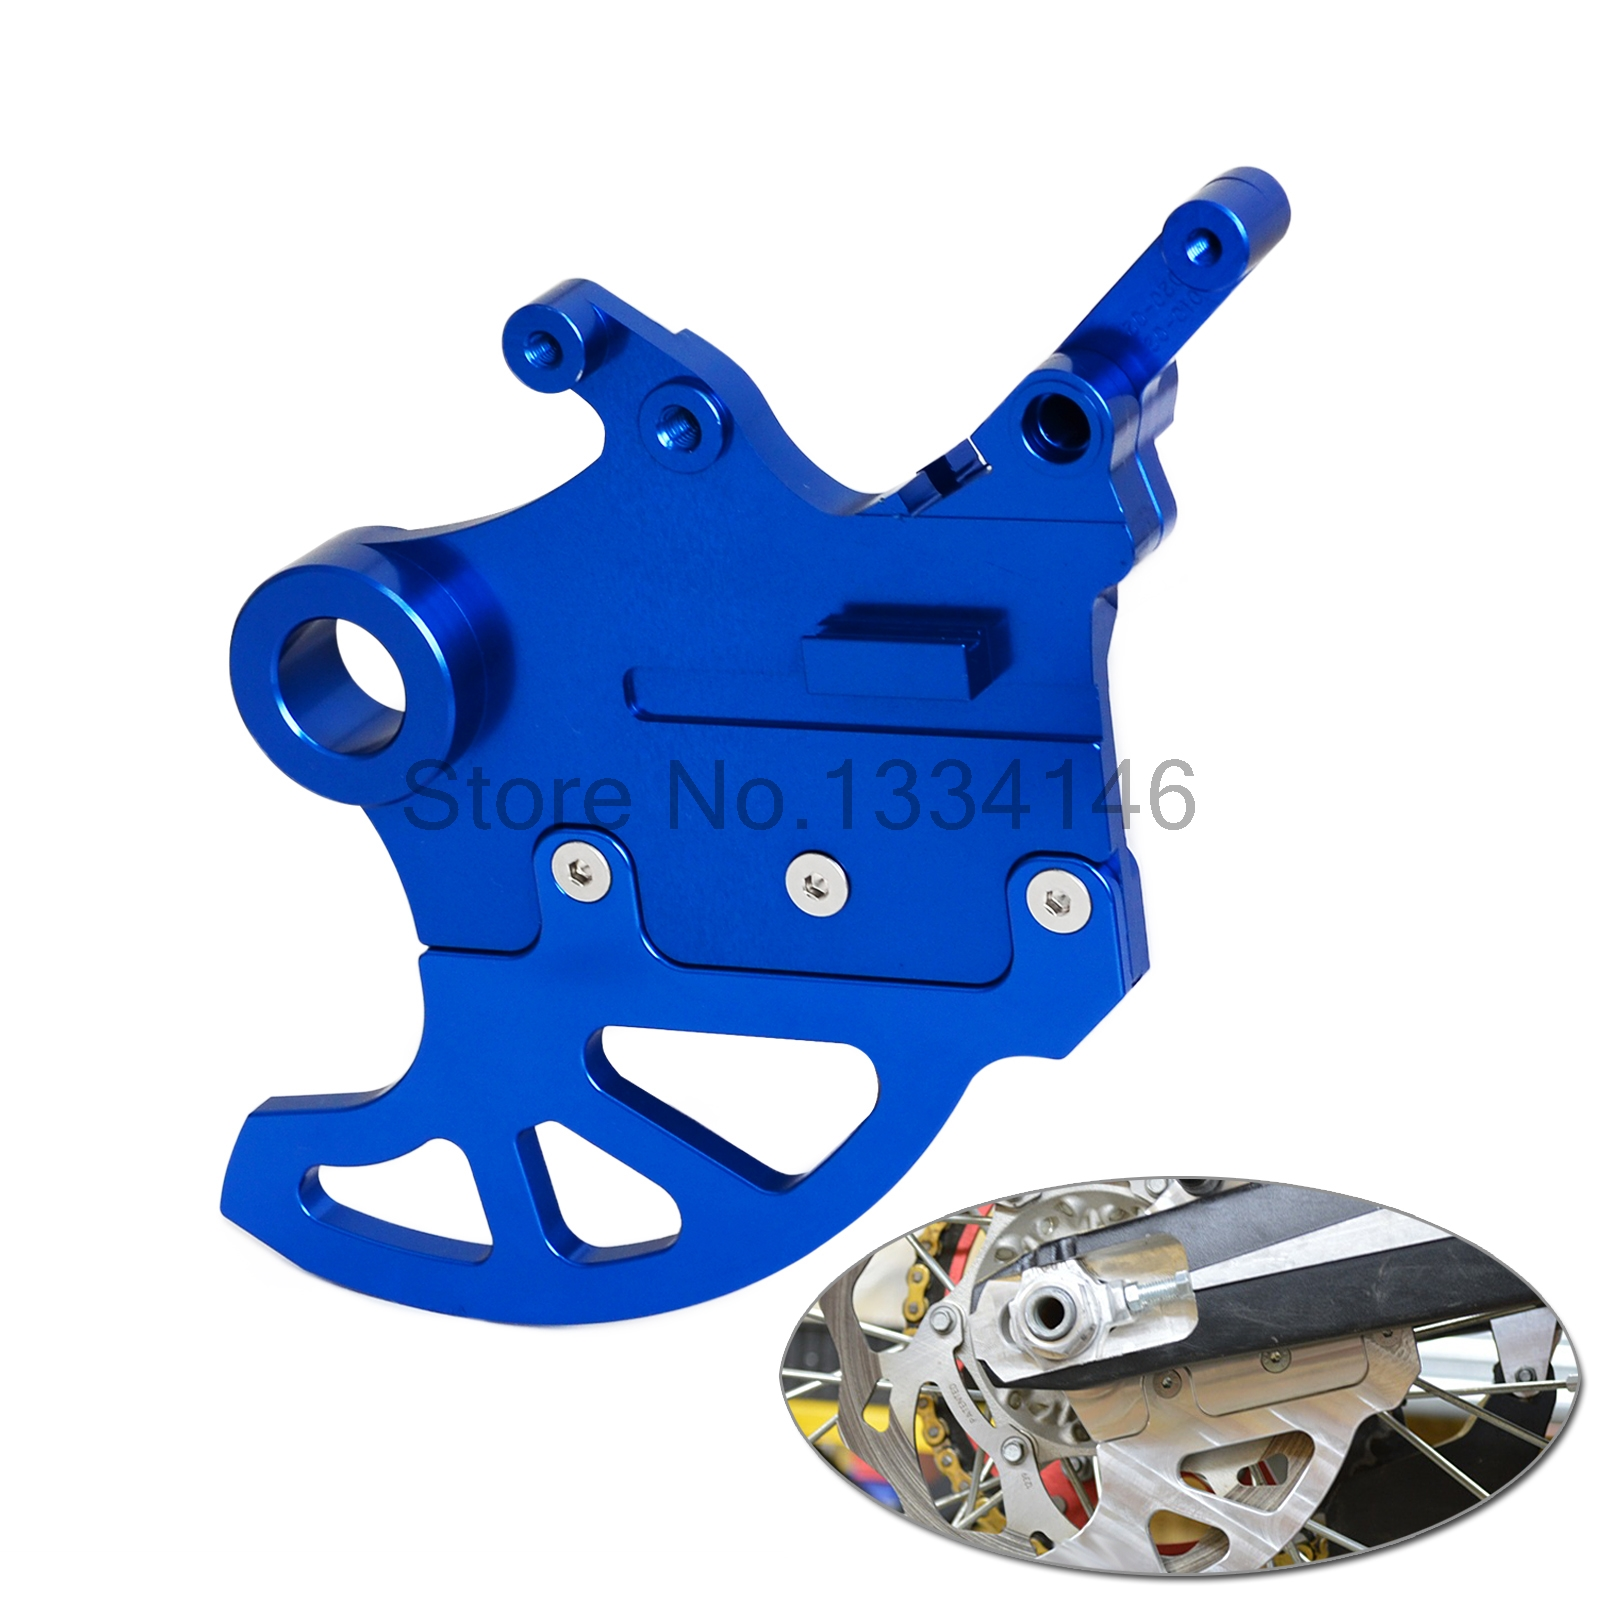 NICECNC Aluminum CNC Rear Brake Disc Rotor Guard Protector Cover For Yamaha YZ250F YZ450F 2009-2013 2014 2015 YZ 250F 450F motorbike scooter cnc aluminum alloy rotatable spinable cooling fan cap cover protector guard for yamaha bws x 125 cygnus 125